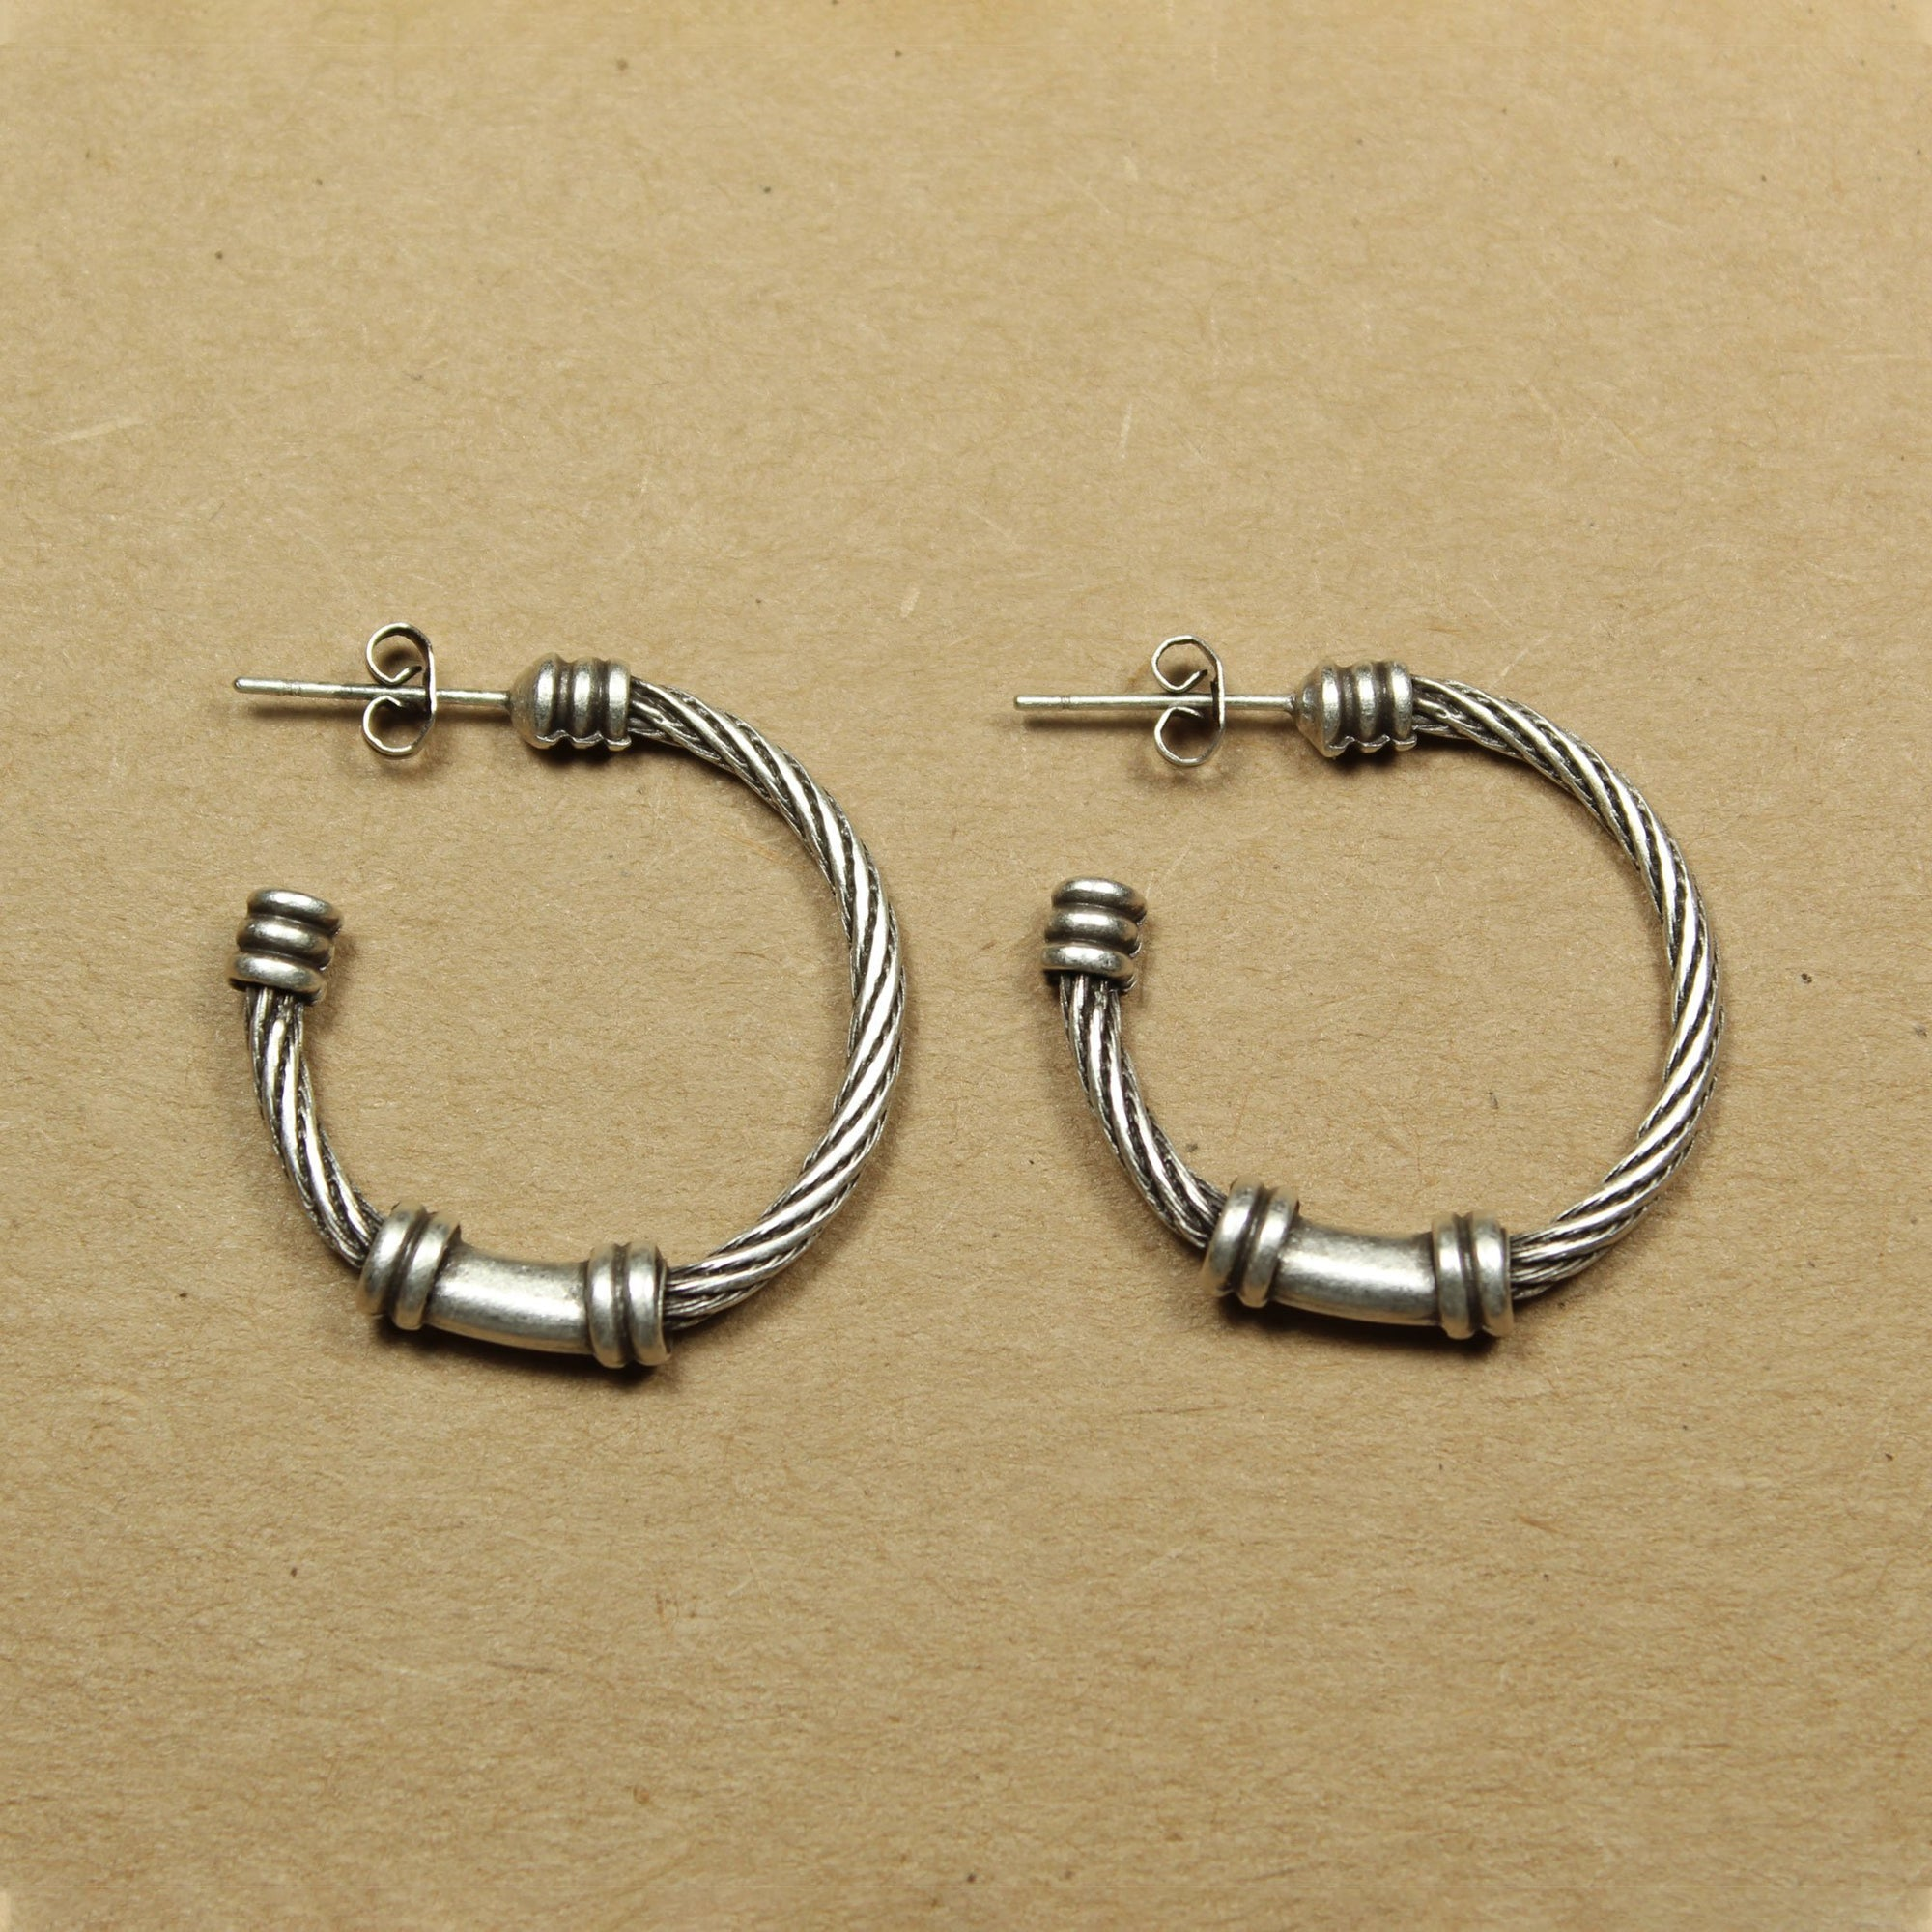 Textured wire-look hoop earrings | Earrings - The Naughty Shrew